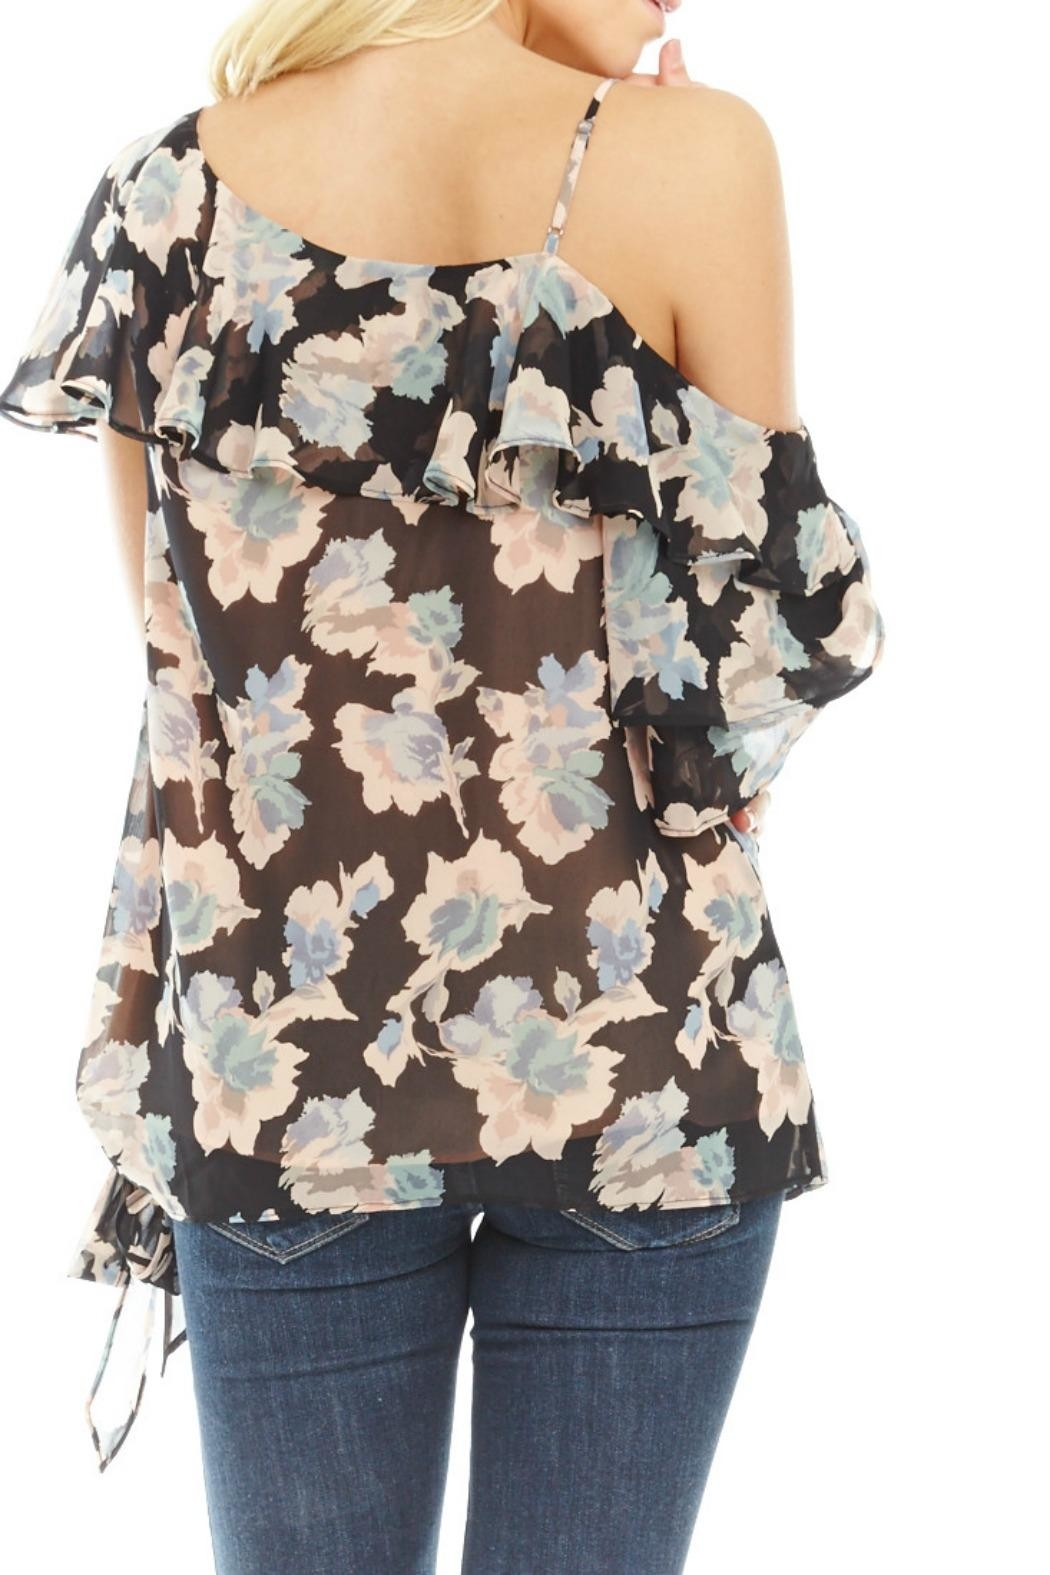 Mabel & Mary Moonlight One-Shoulder Top - Side Cropped Image